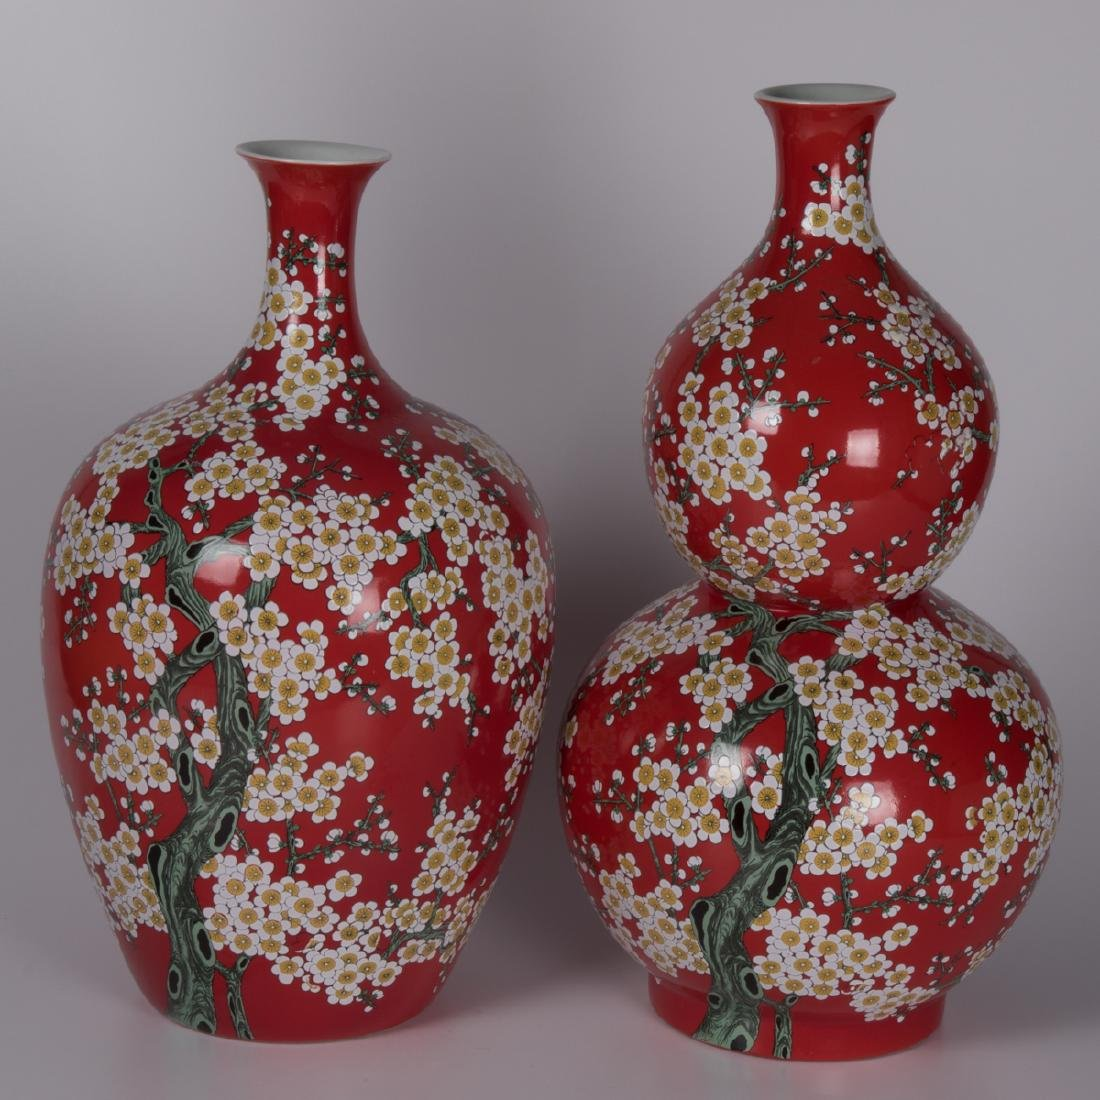 Two Chinese Porcelain Vases, 20th Century,